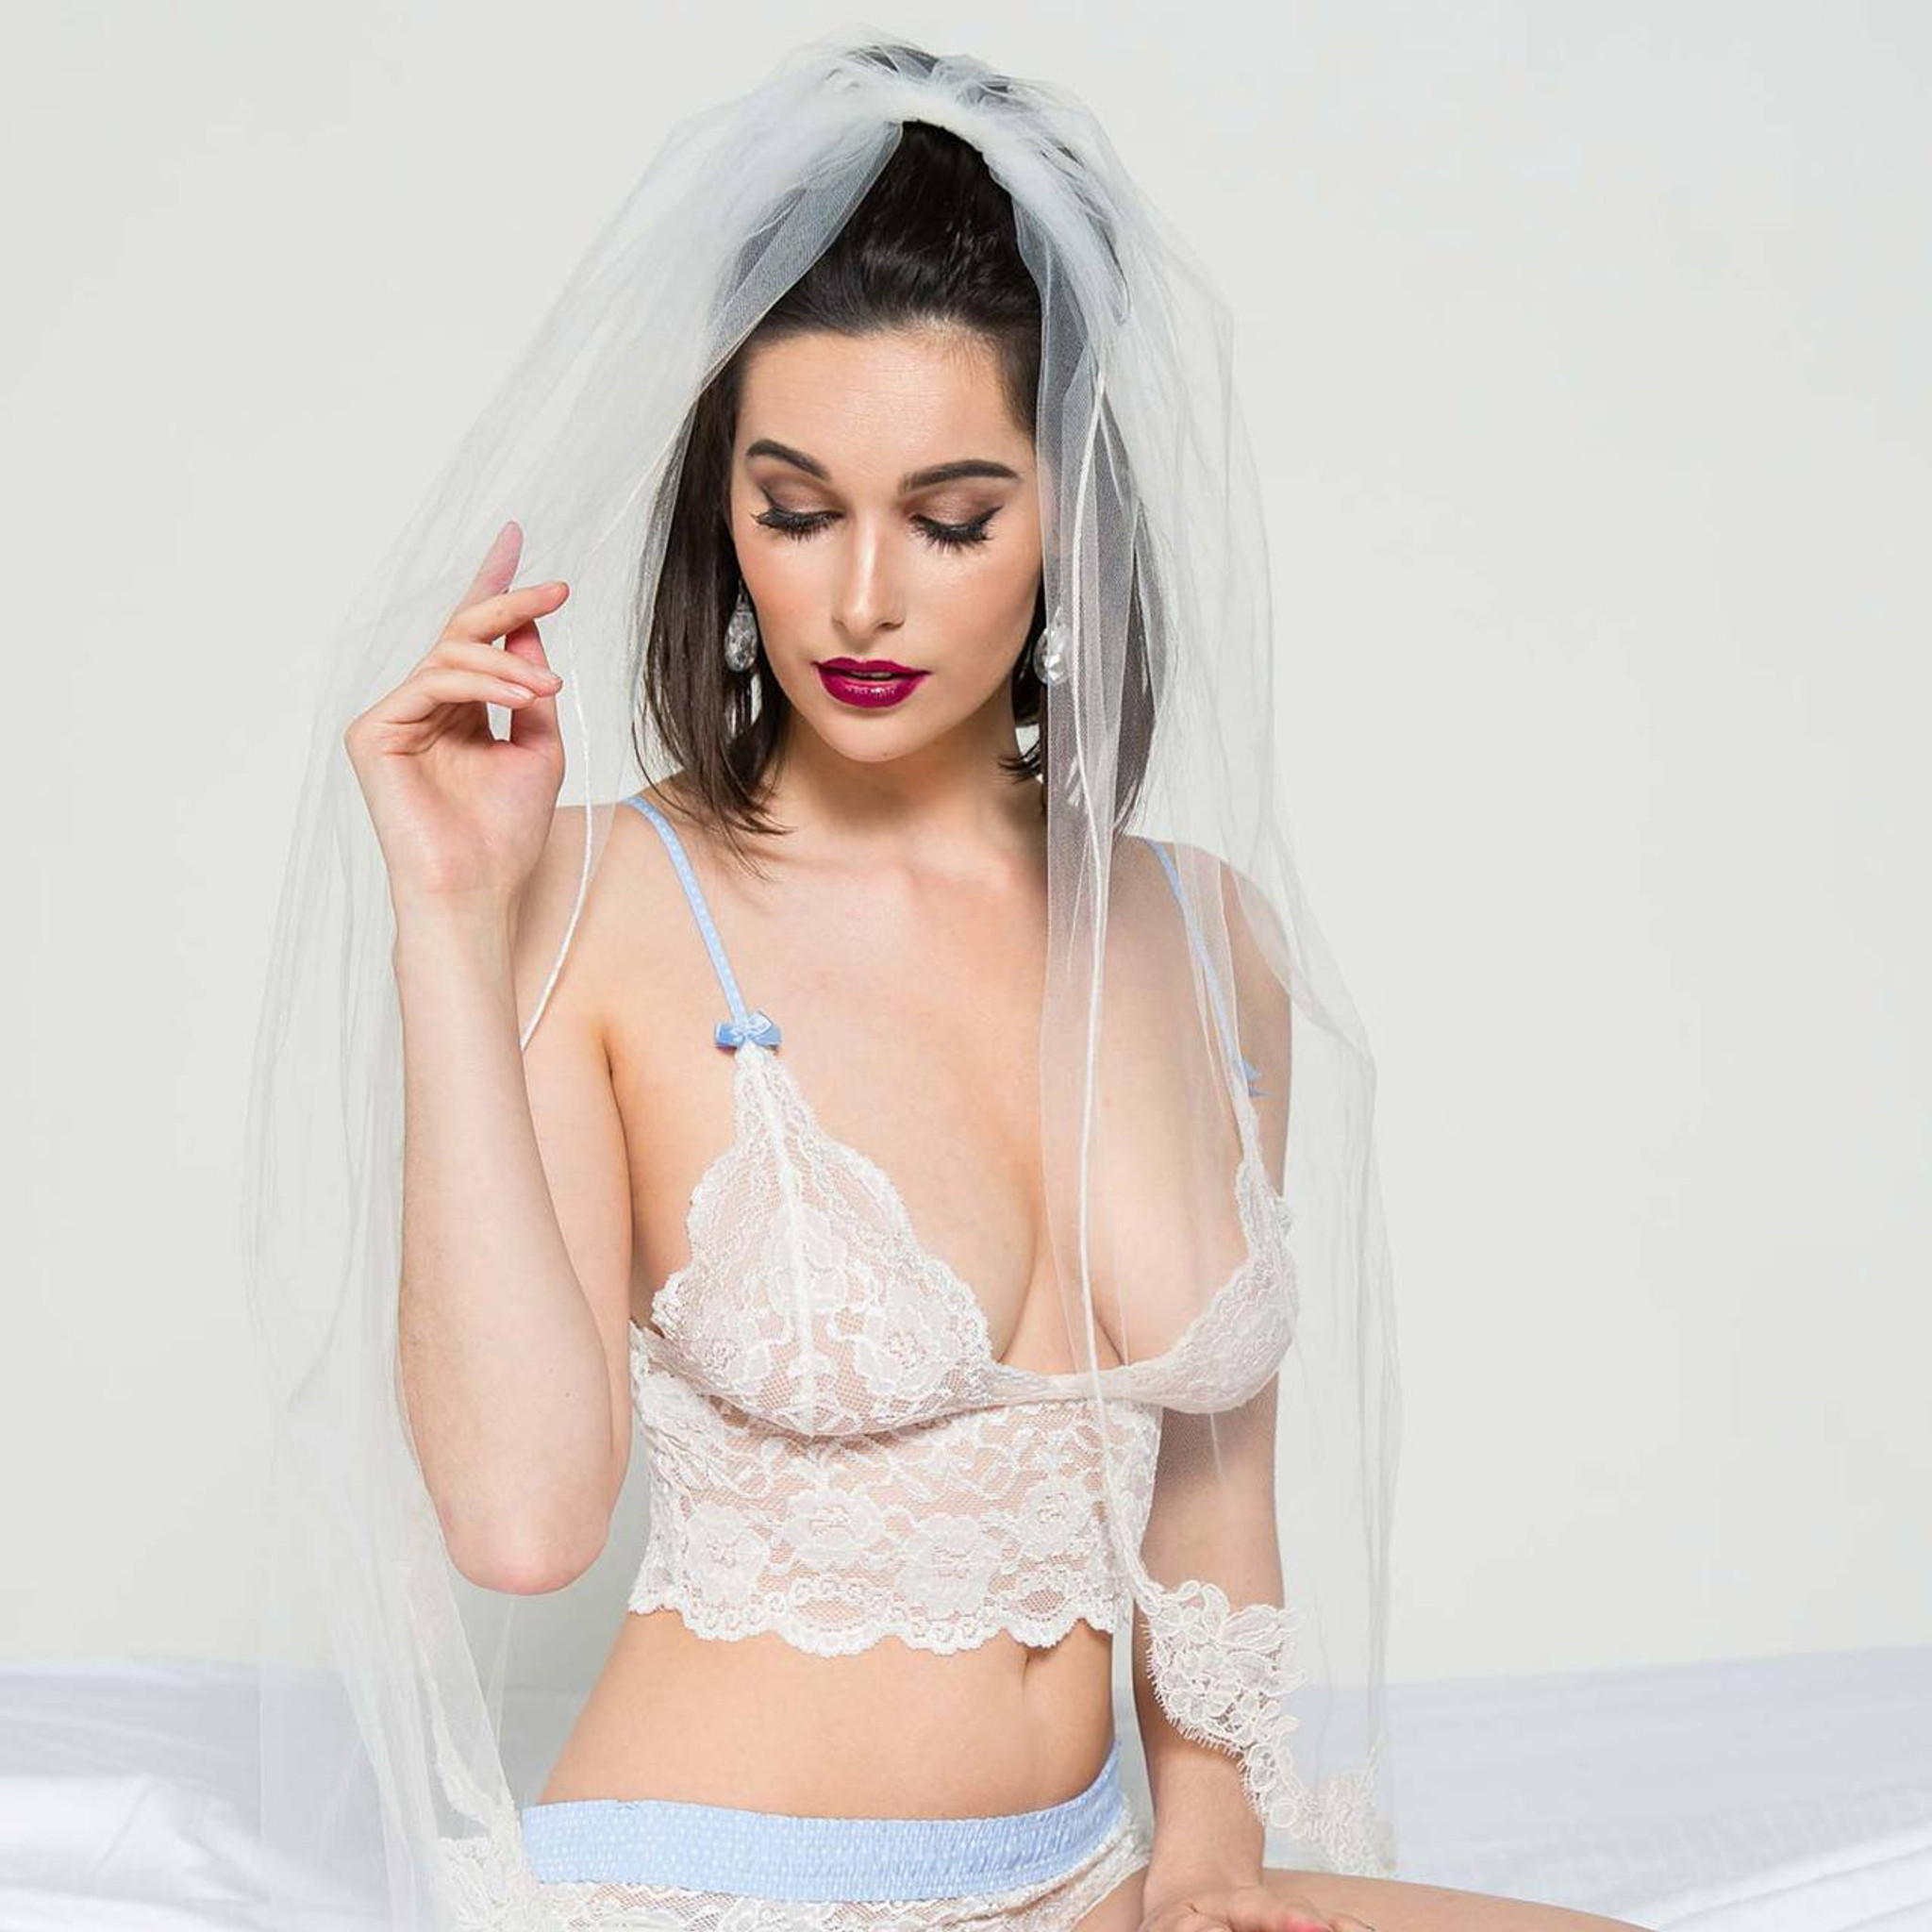 804bf7f5ee ... White Lace Bralette Camisole and matching White Lace Boxers make a  beautiful Wedding Lingerie Set Ivory Lace Top with Light Blue ...